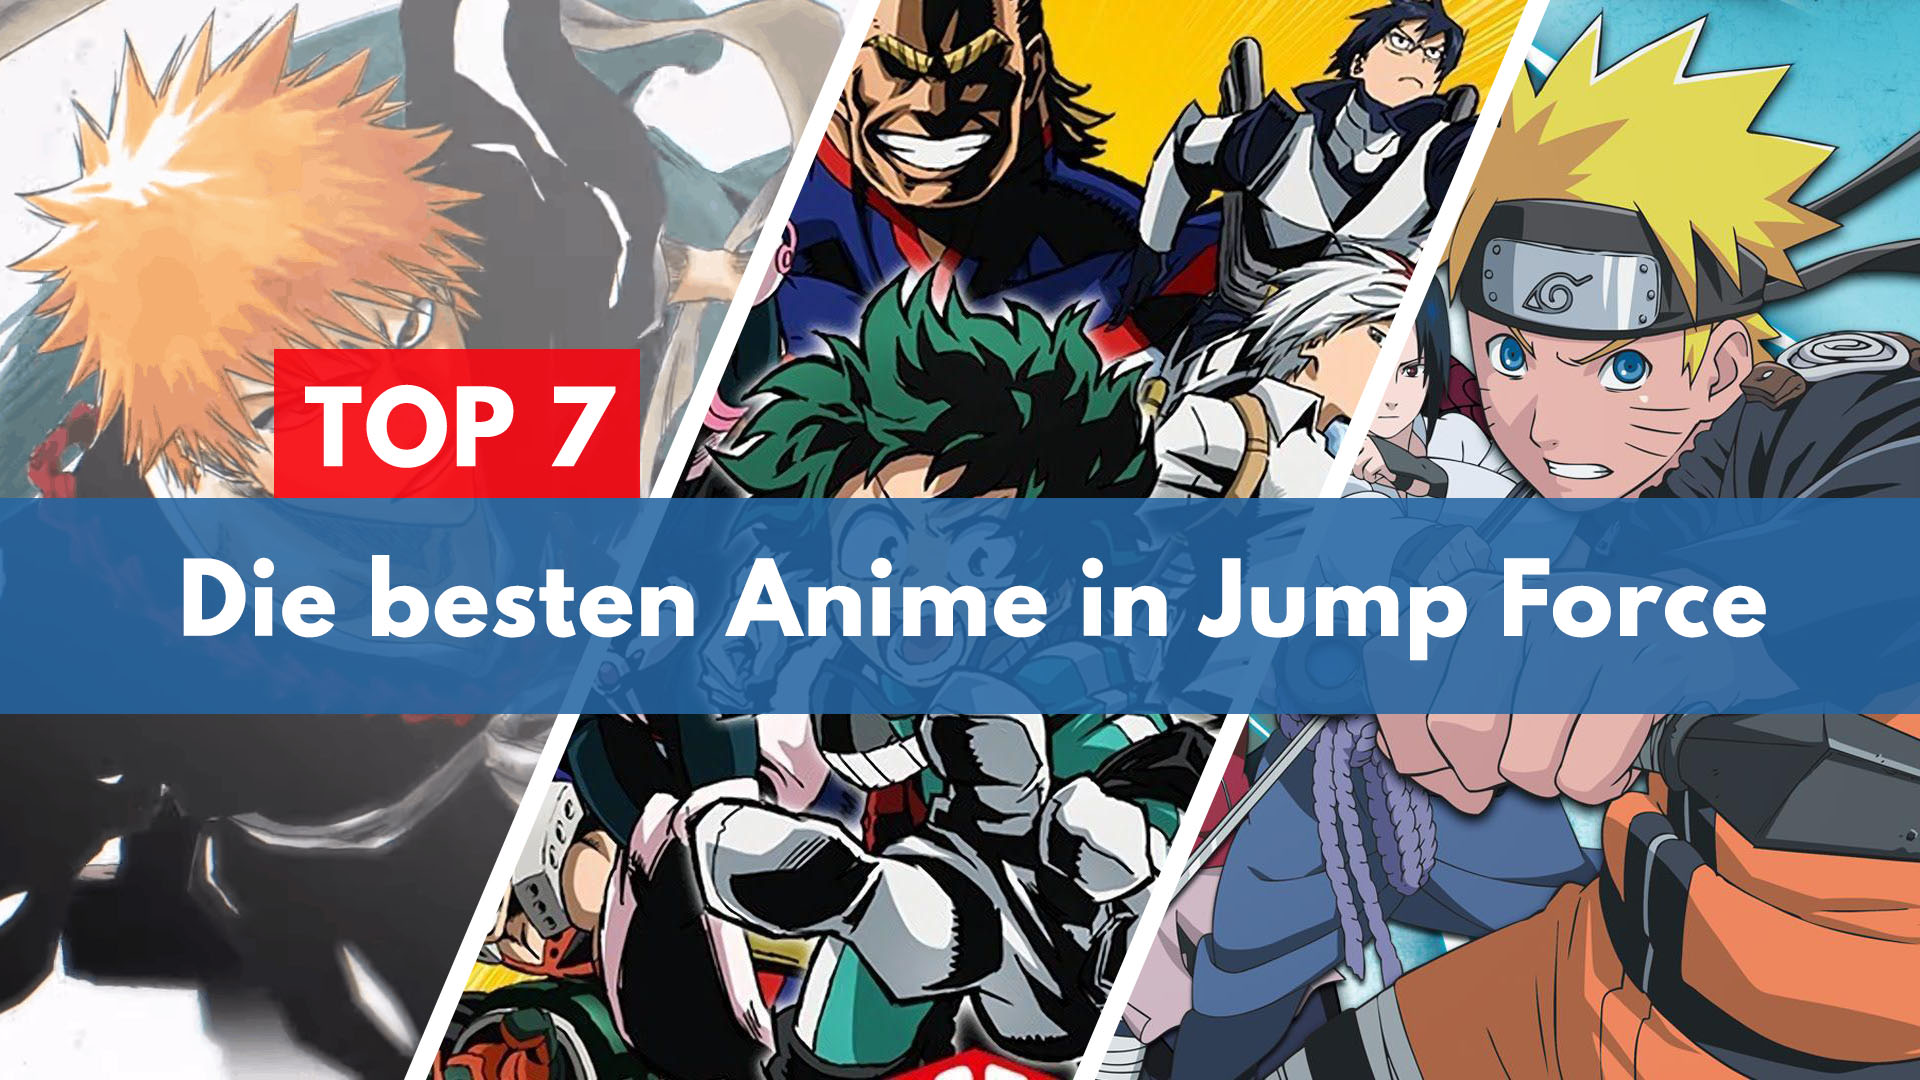 Top 7 Anime in Jump Force